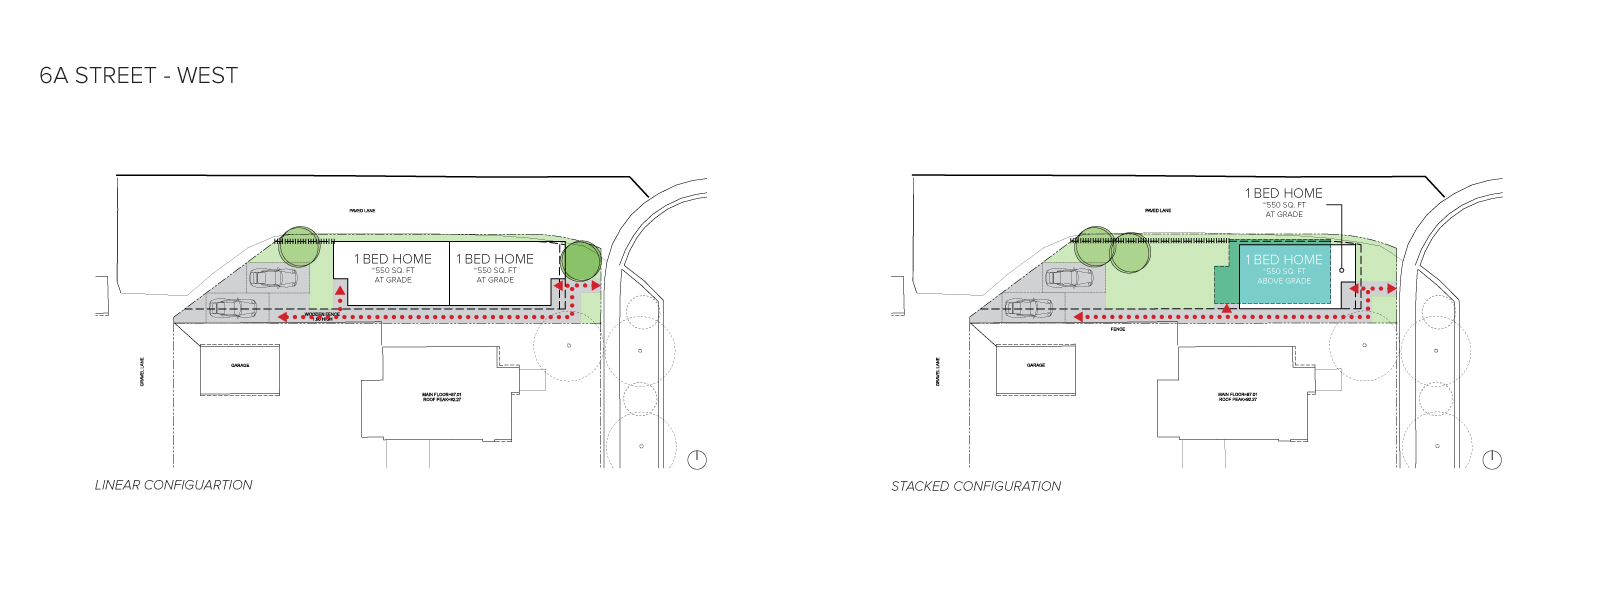 An image of the home configurations on the west side of 6A Street.